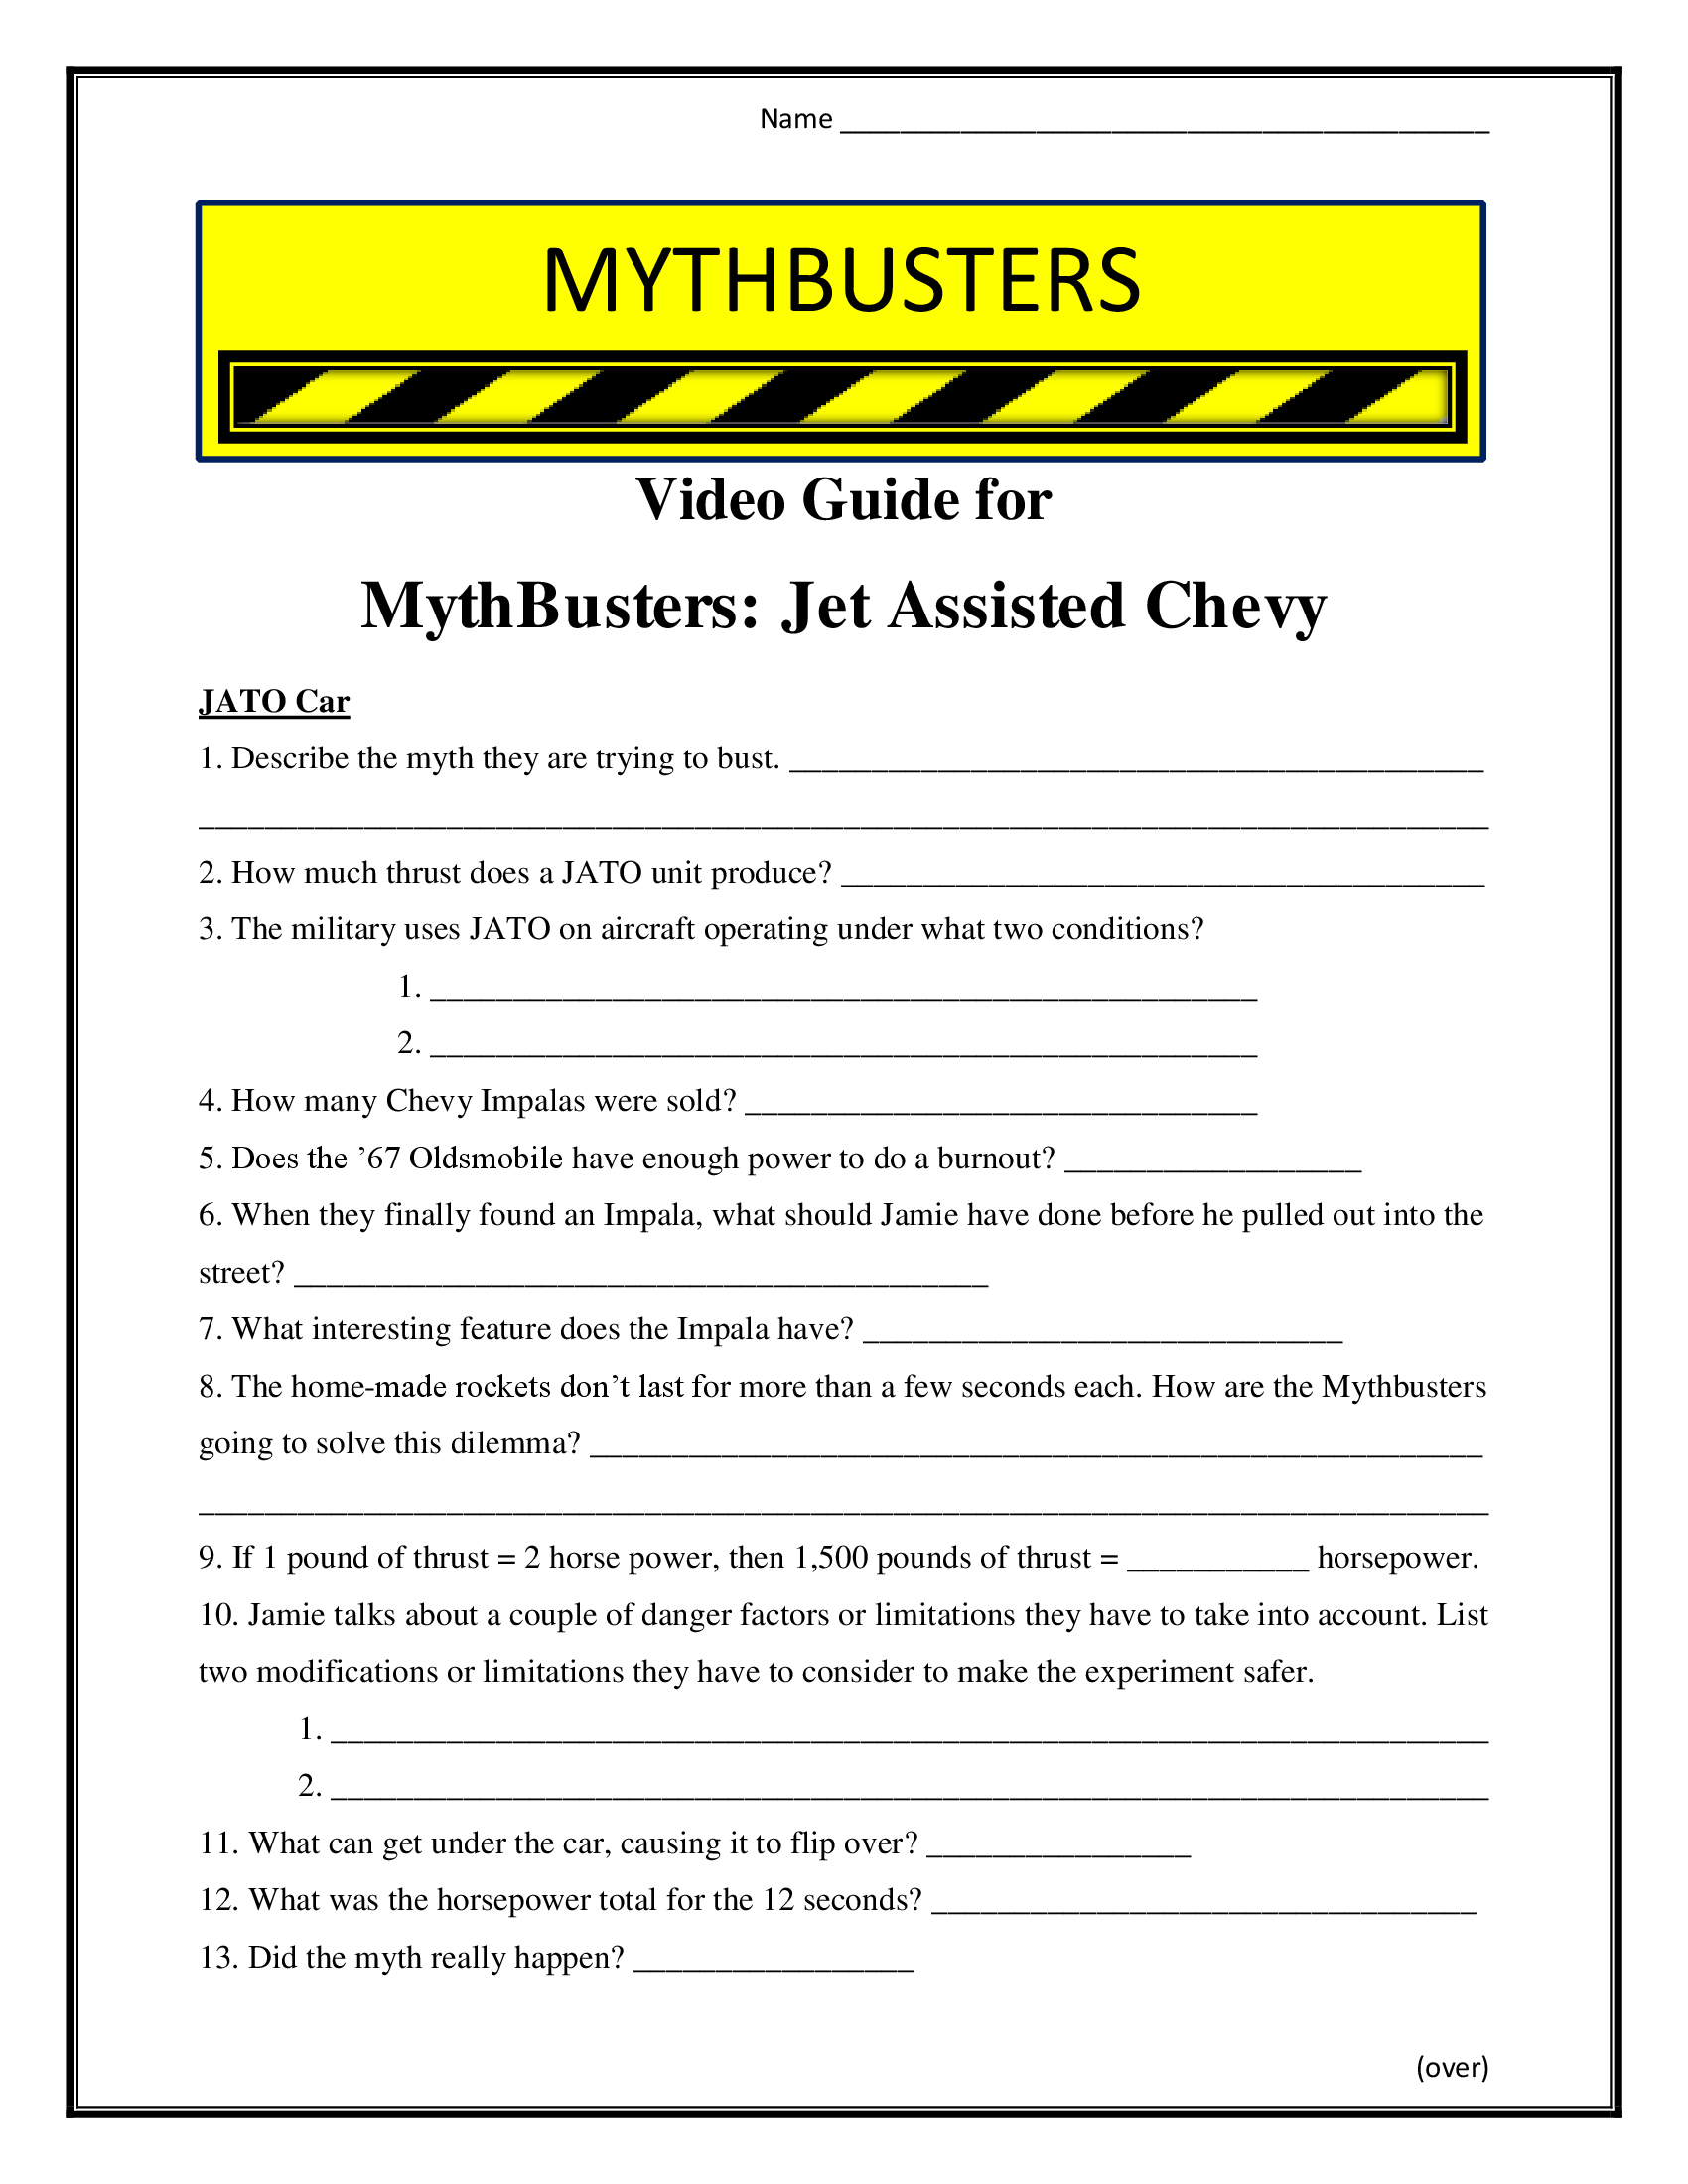 Mythbusters Jet Assisted Chevy Worksheet Season 1